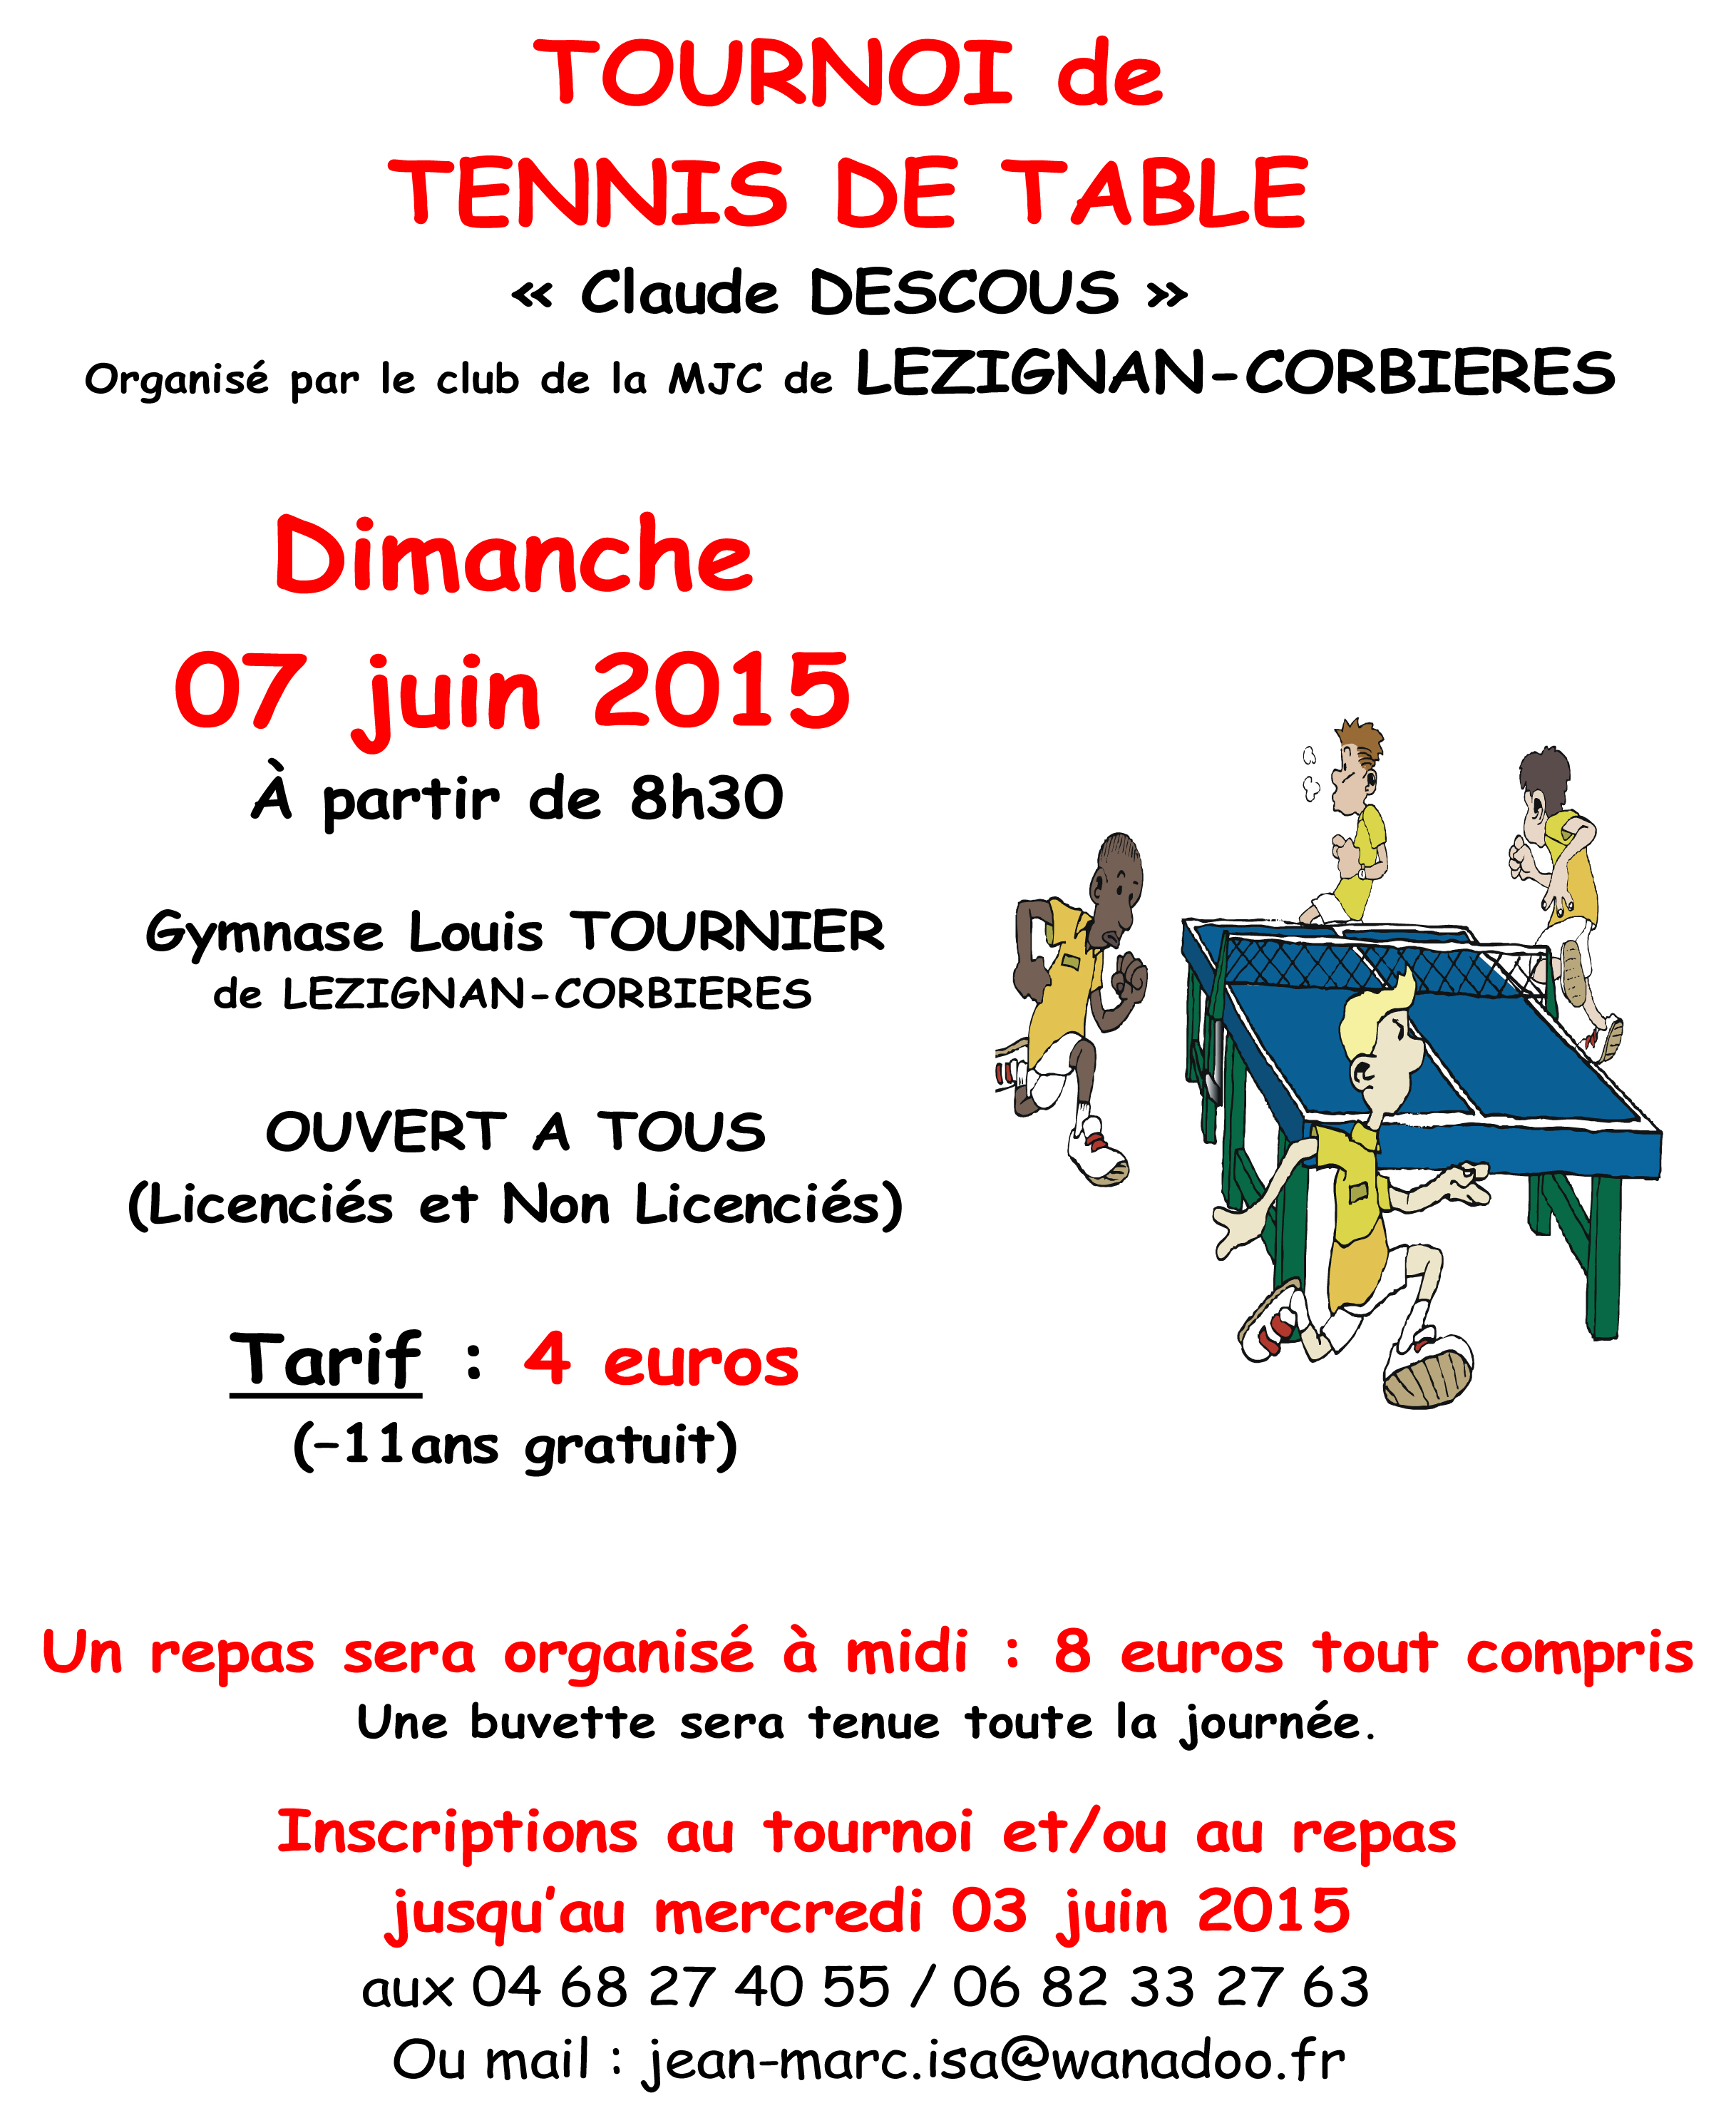 TENNIS DE TABLE >> TOURNOI CLAUDE DESCOUS